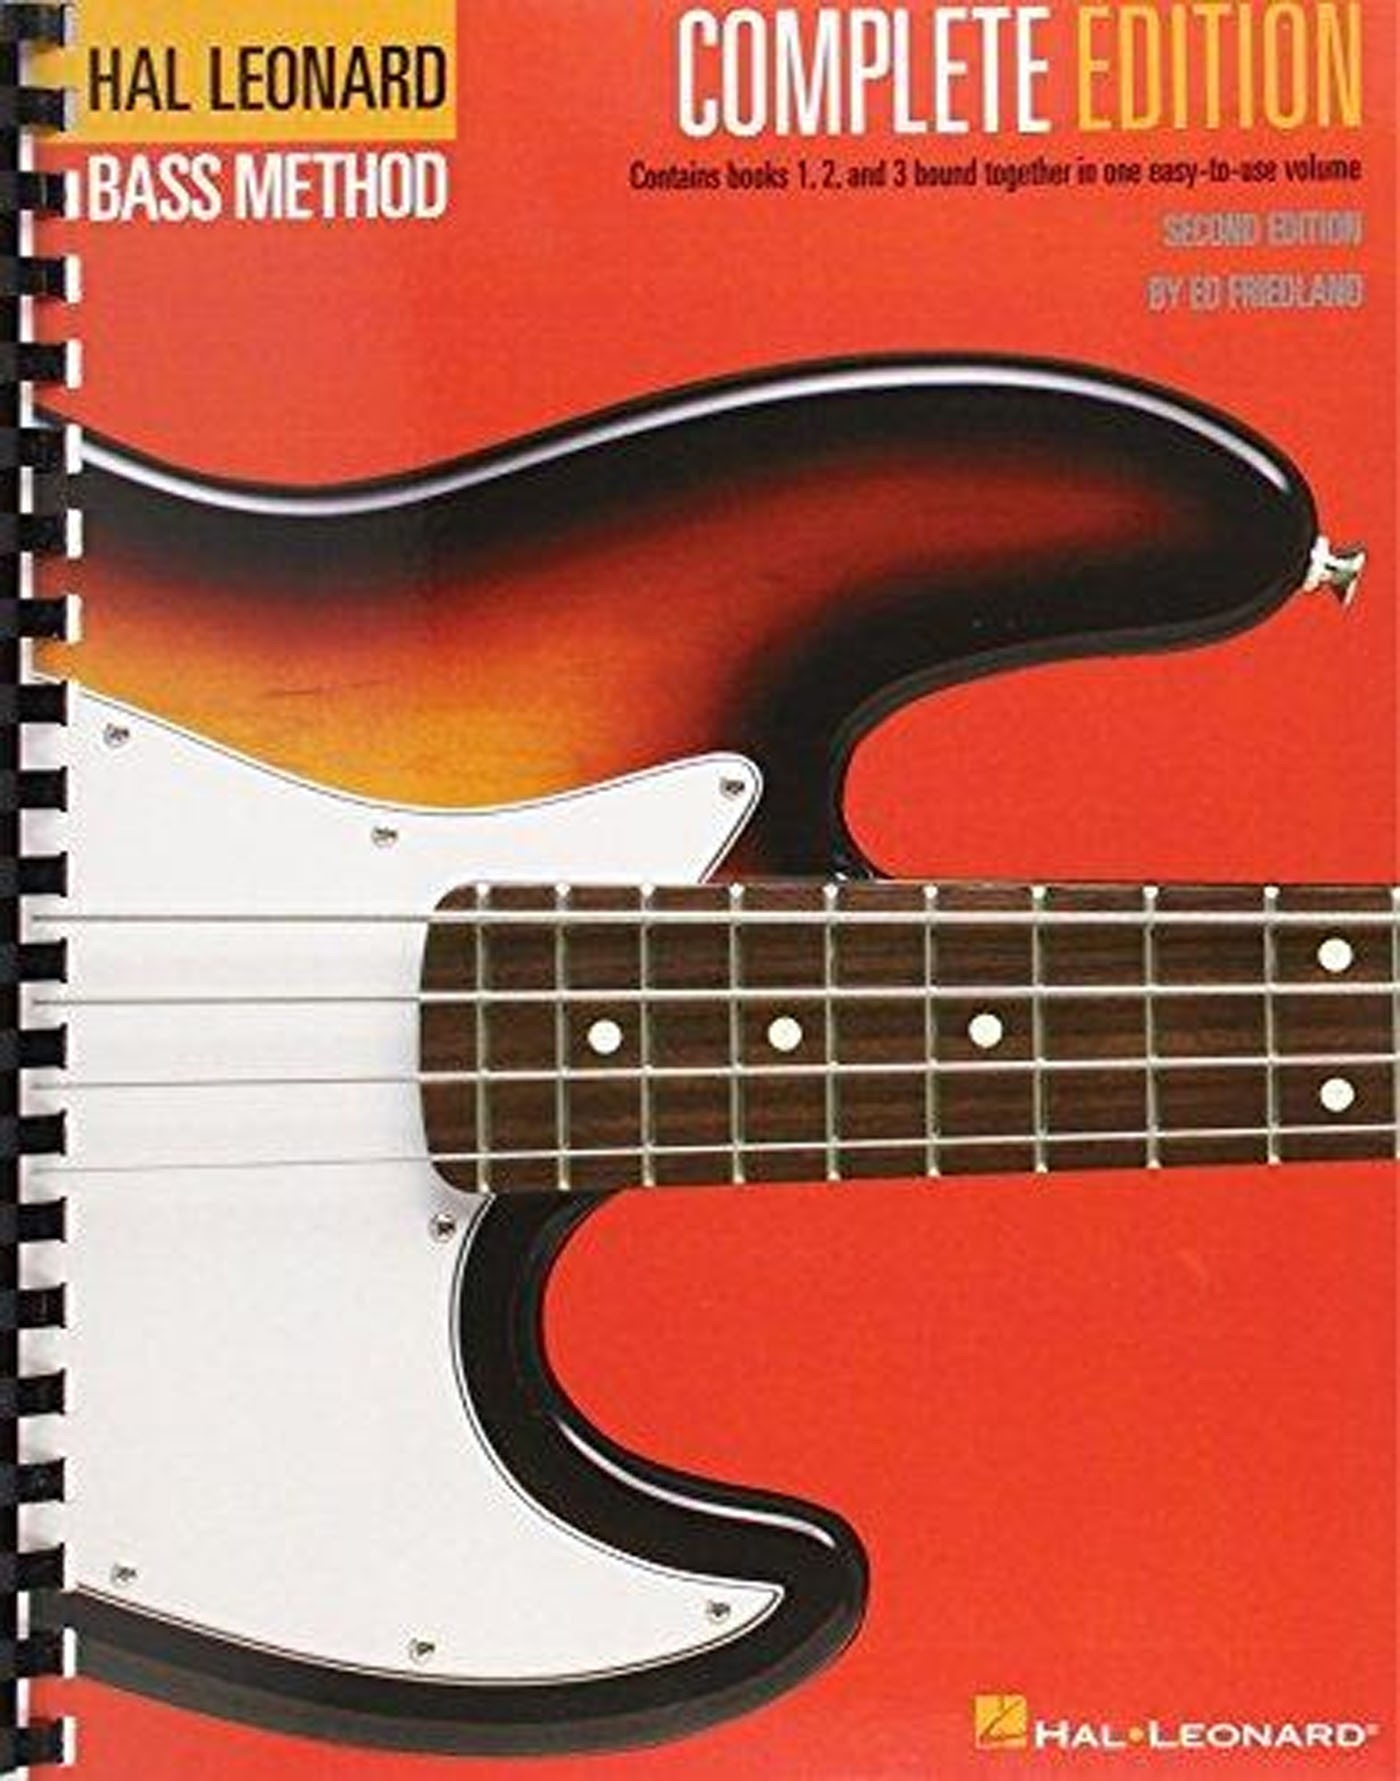 The Complete Edition Bass Method Spiral Bound Guitar Books 1-3 Notes & TAB S168